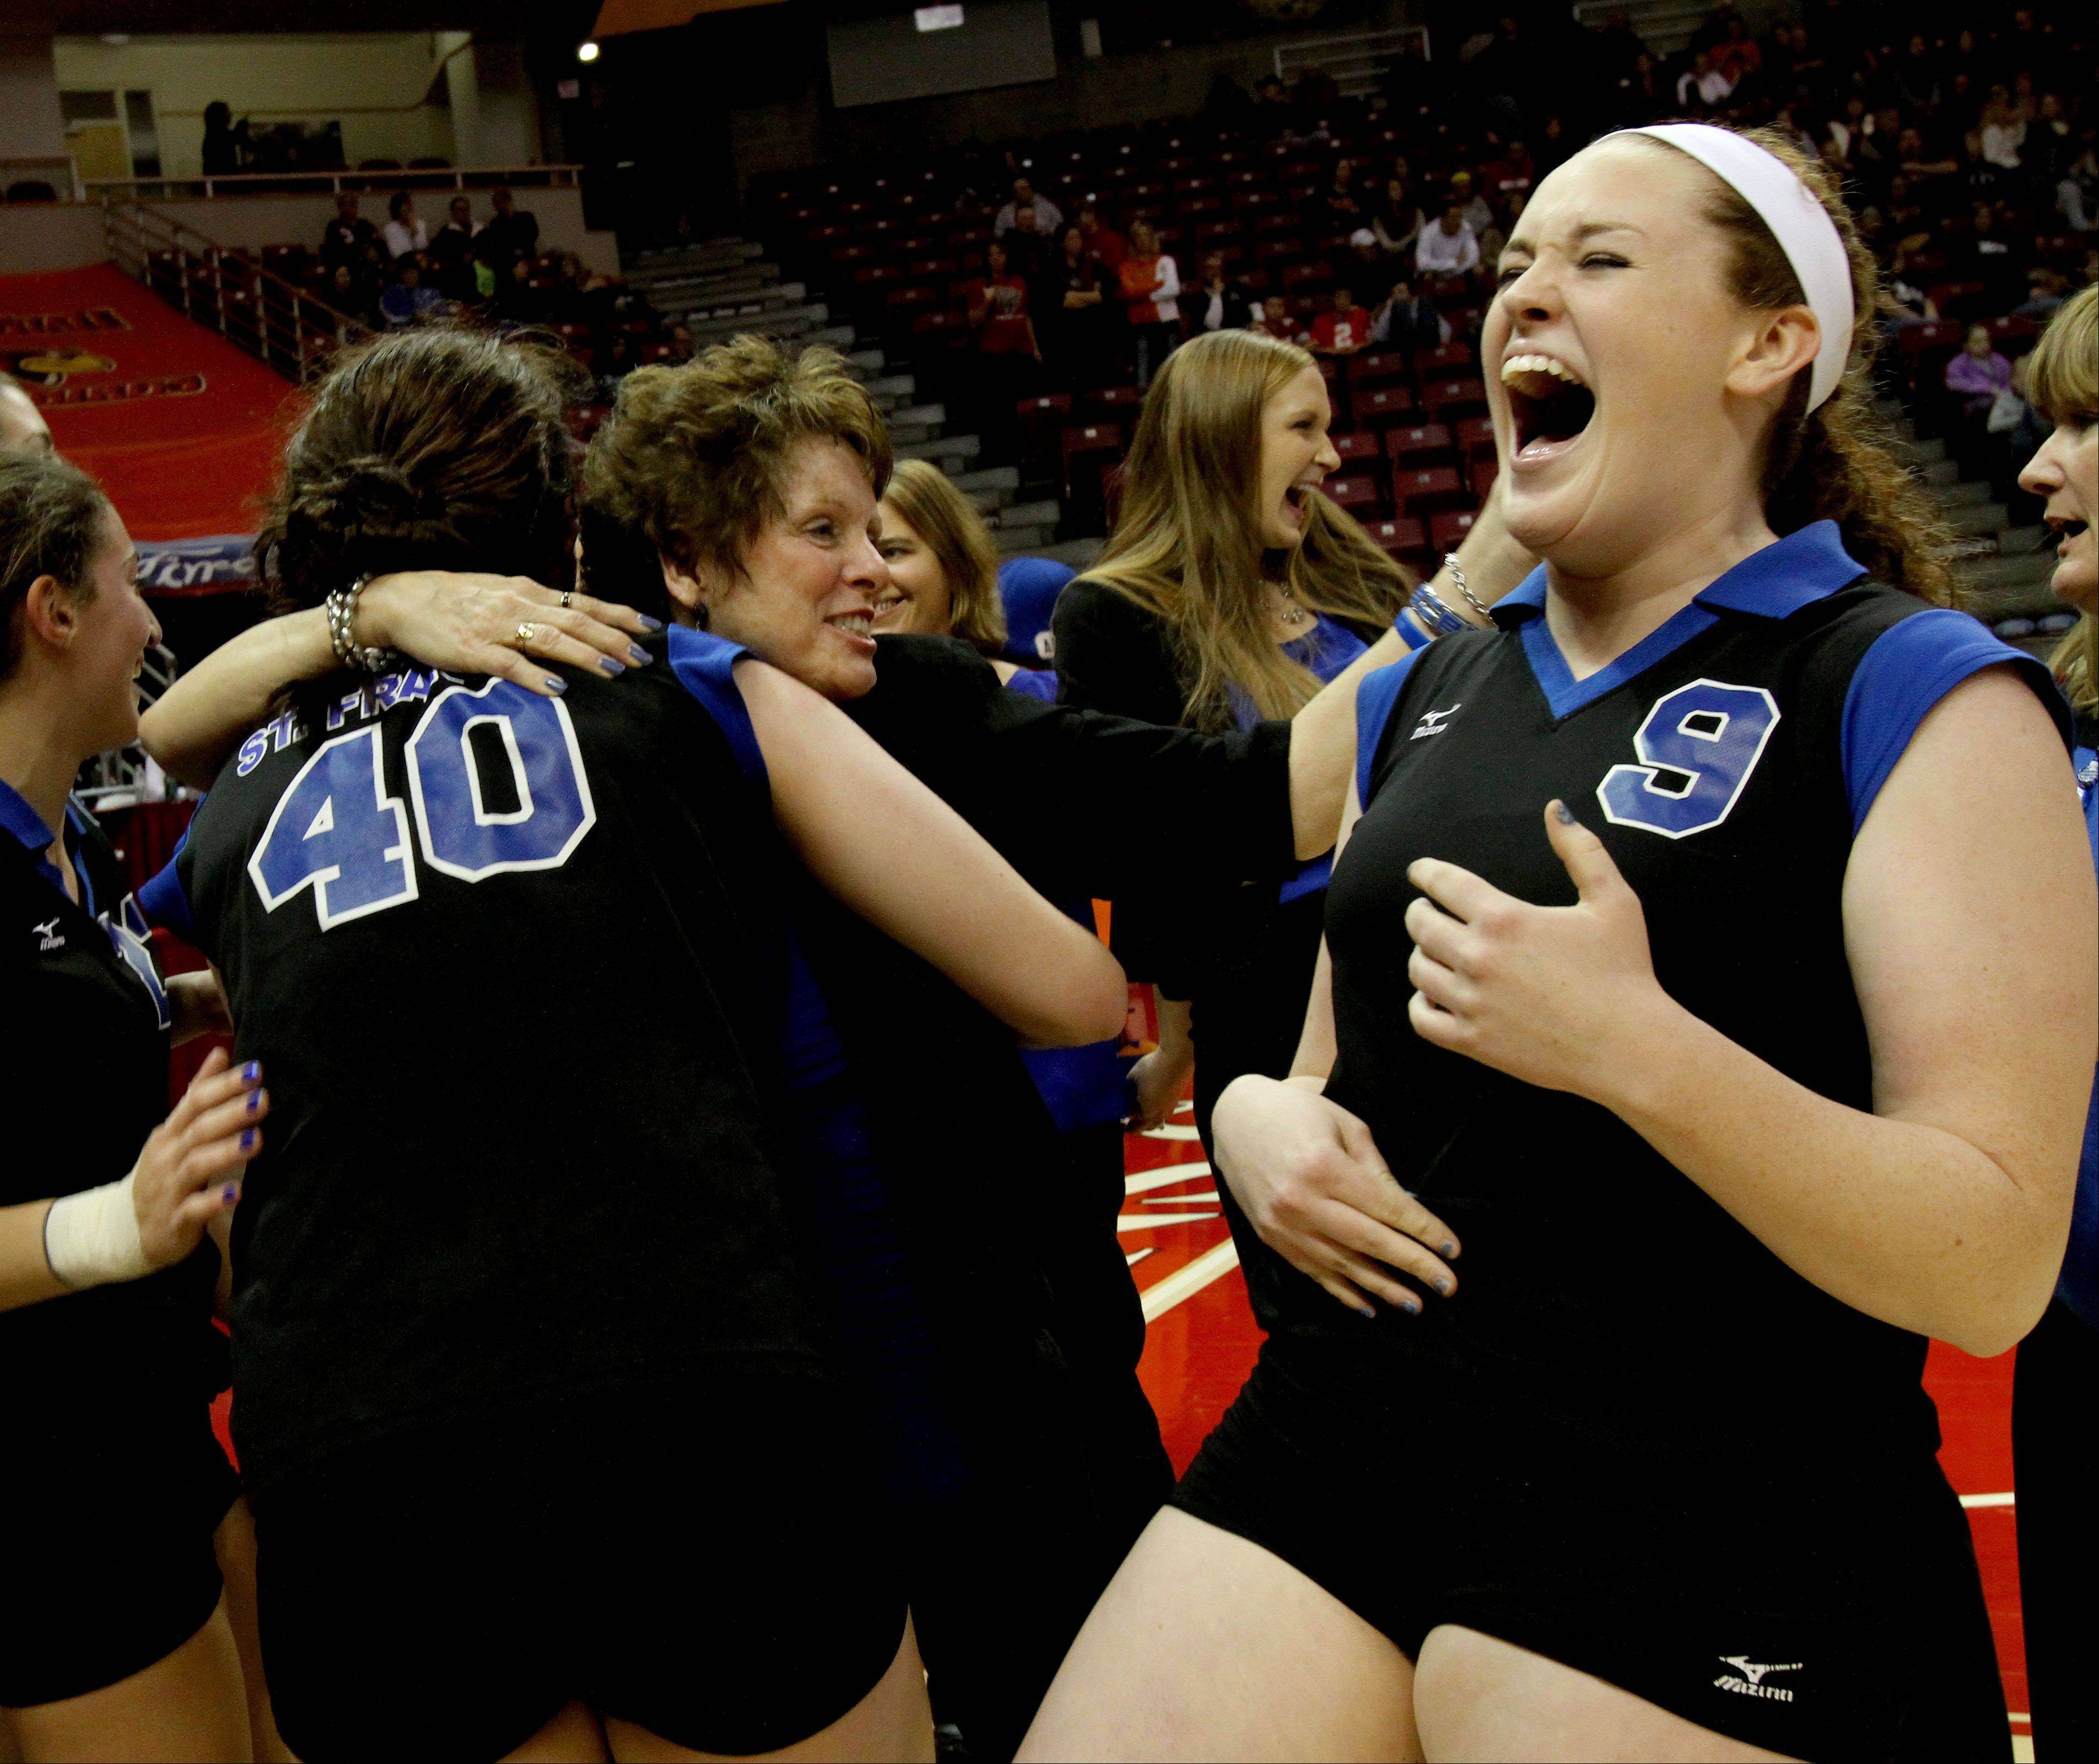 St. Francis coach Peg Kopec, center, hugs her players as Sarah Muisenga, right, celebrates after defeating LaSalle-Peru in Saturday's Class 3A volleyball championship in Normal.